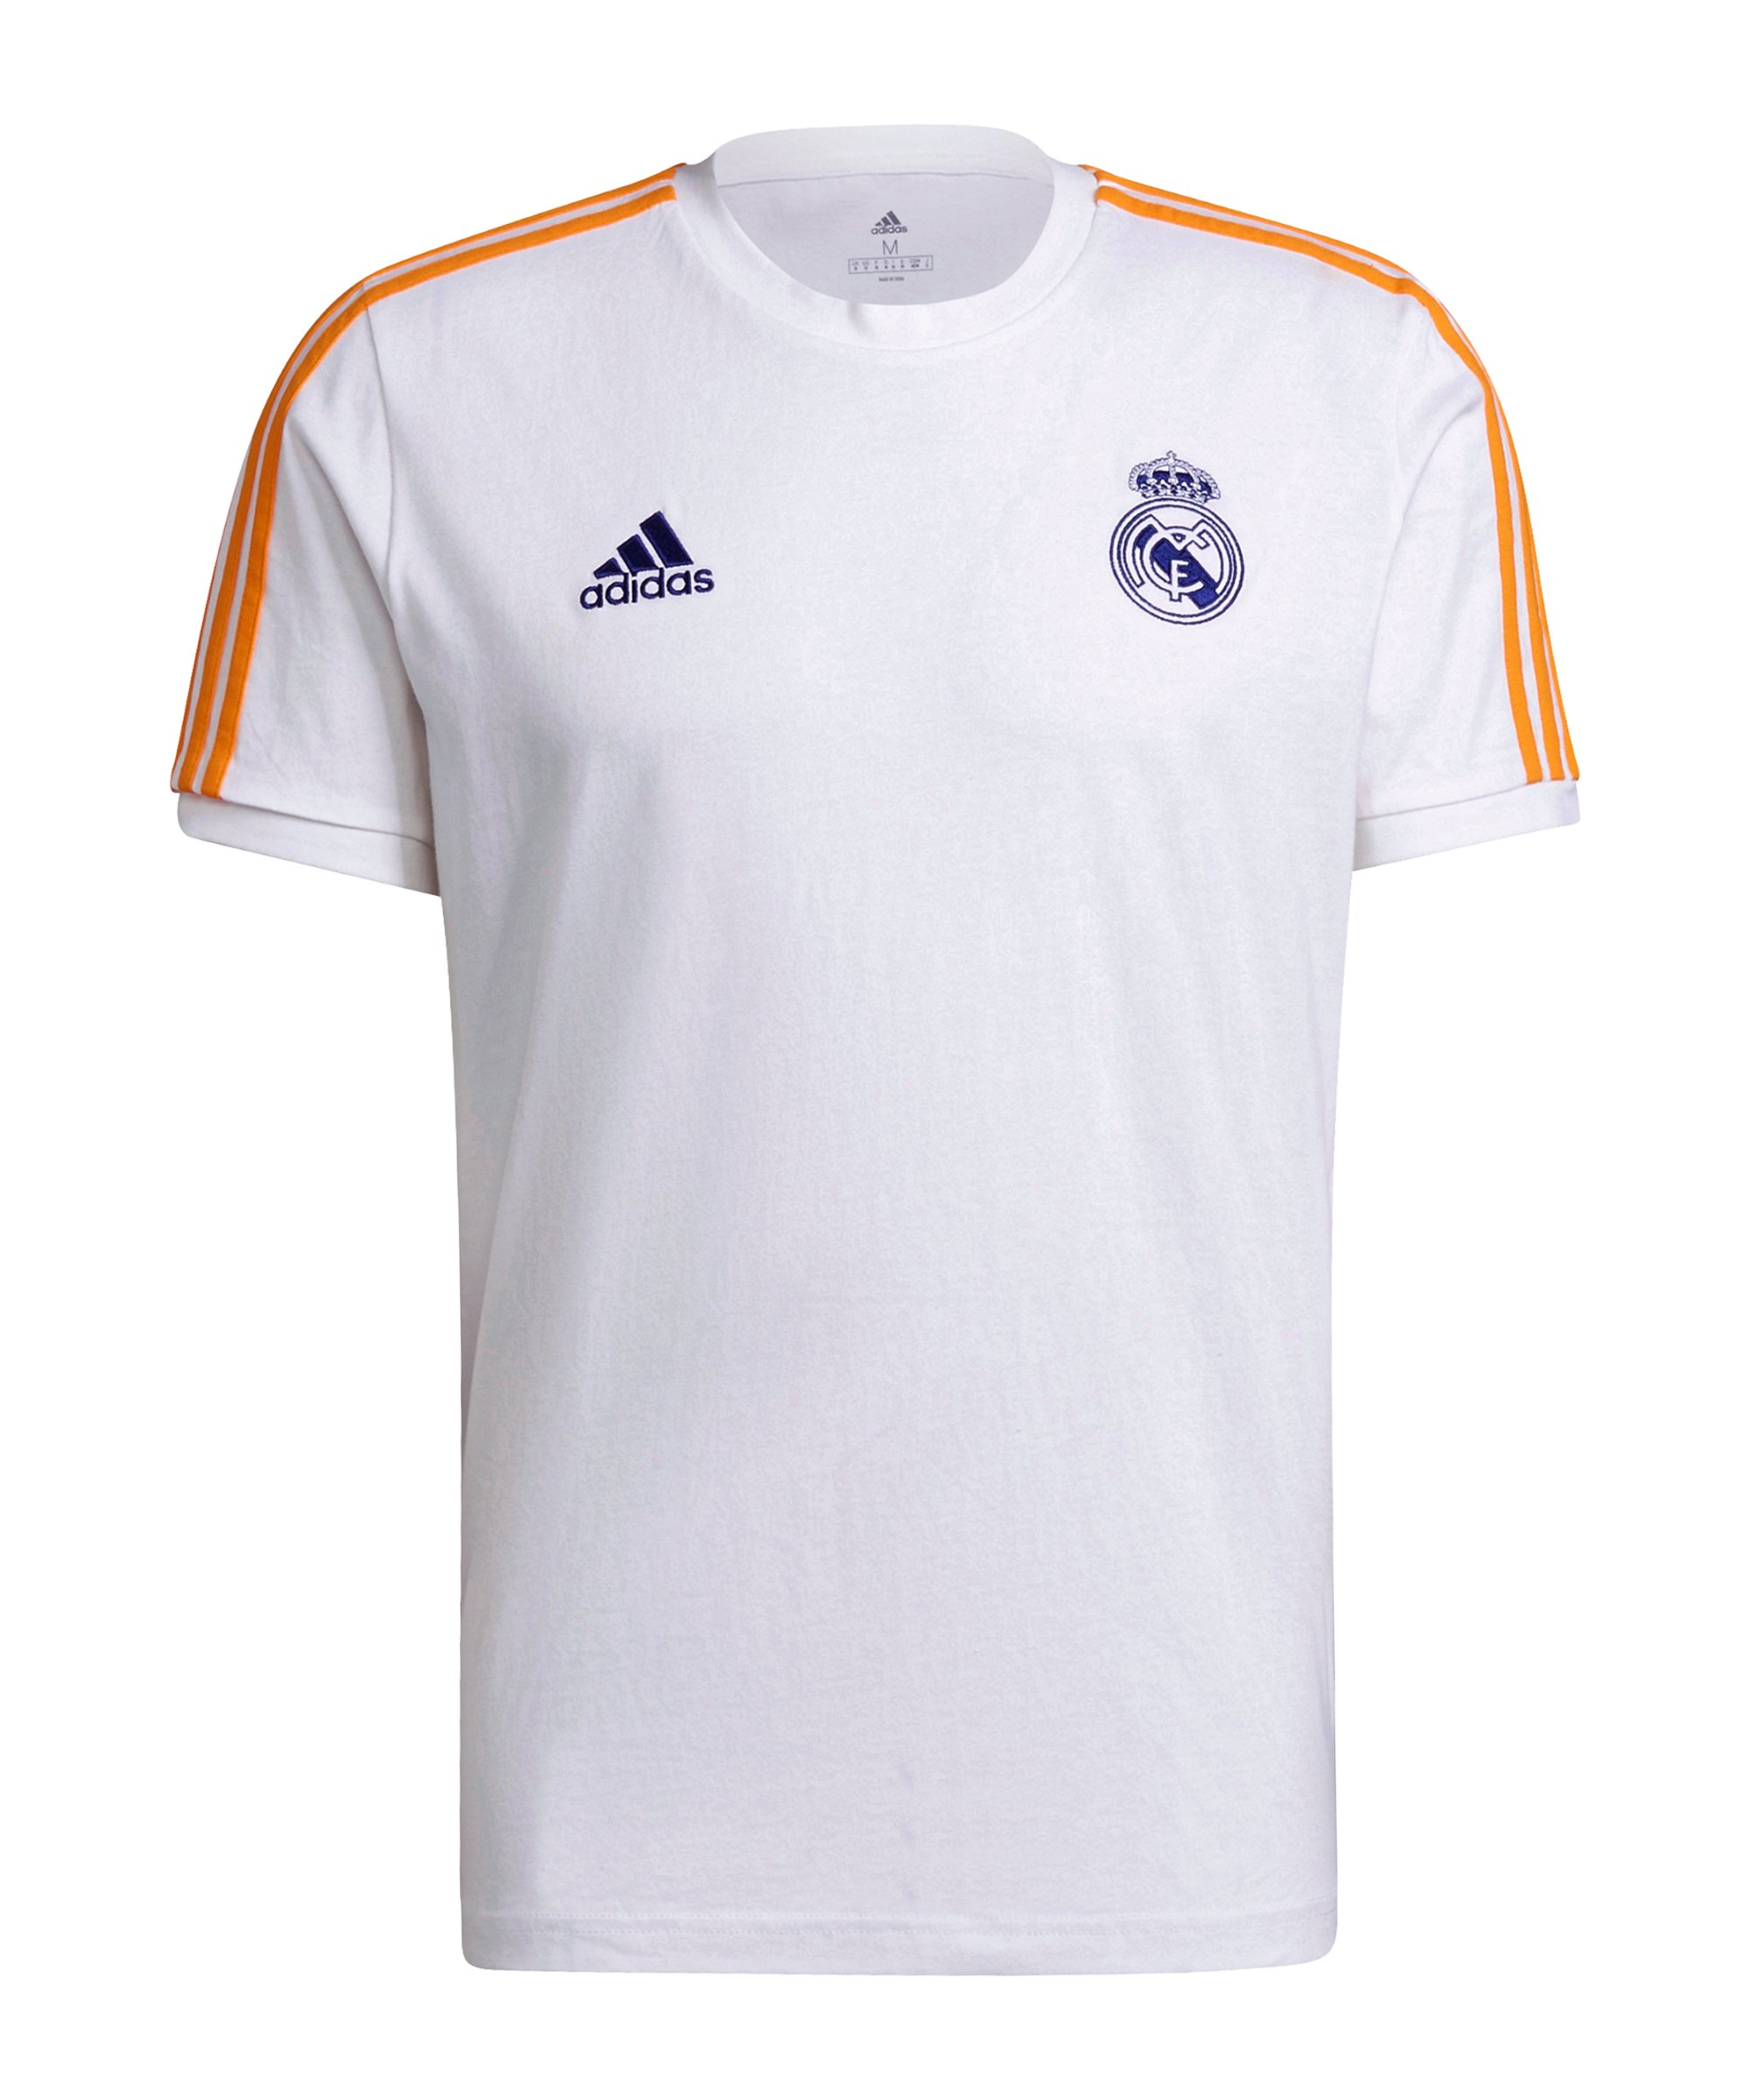 adidas Real Madrid 3S T-Shirt Weiss - weiss